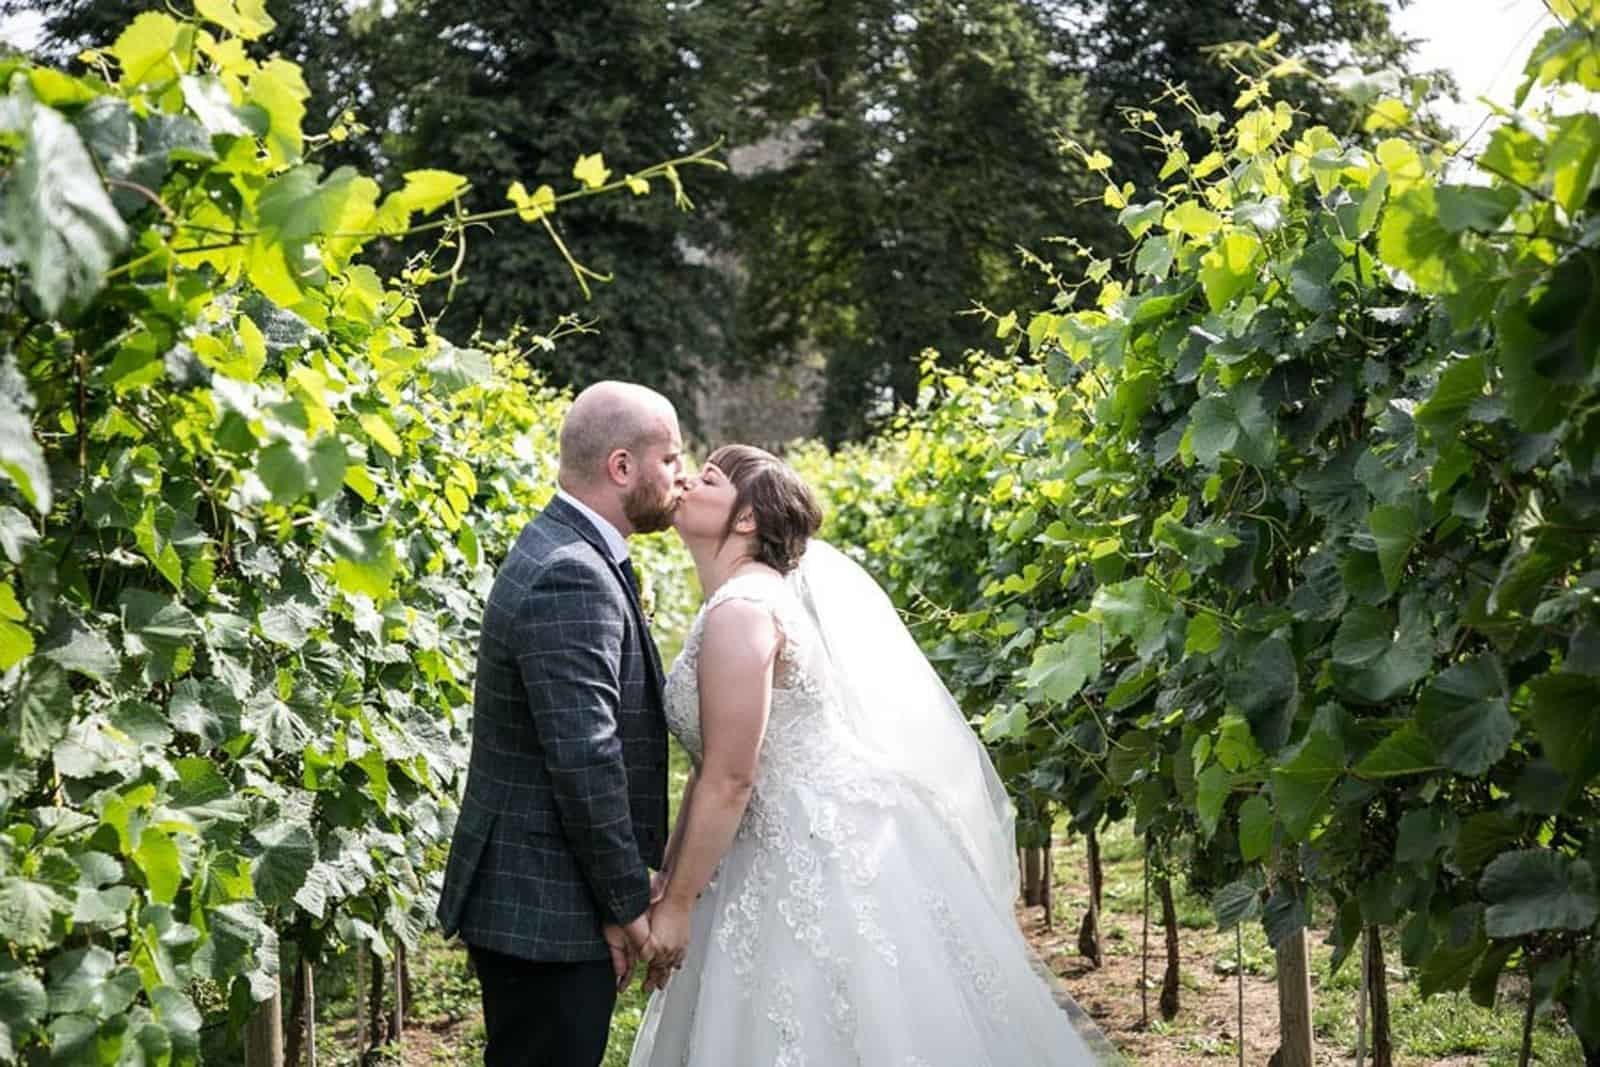 Rebecca Prigmore photograpy - vineyard wedding shot